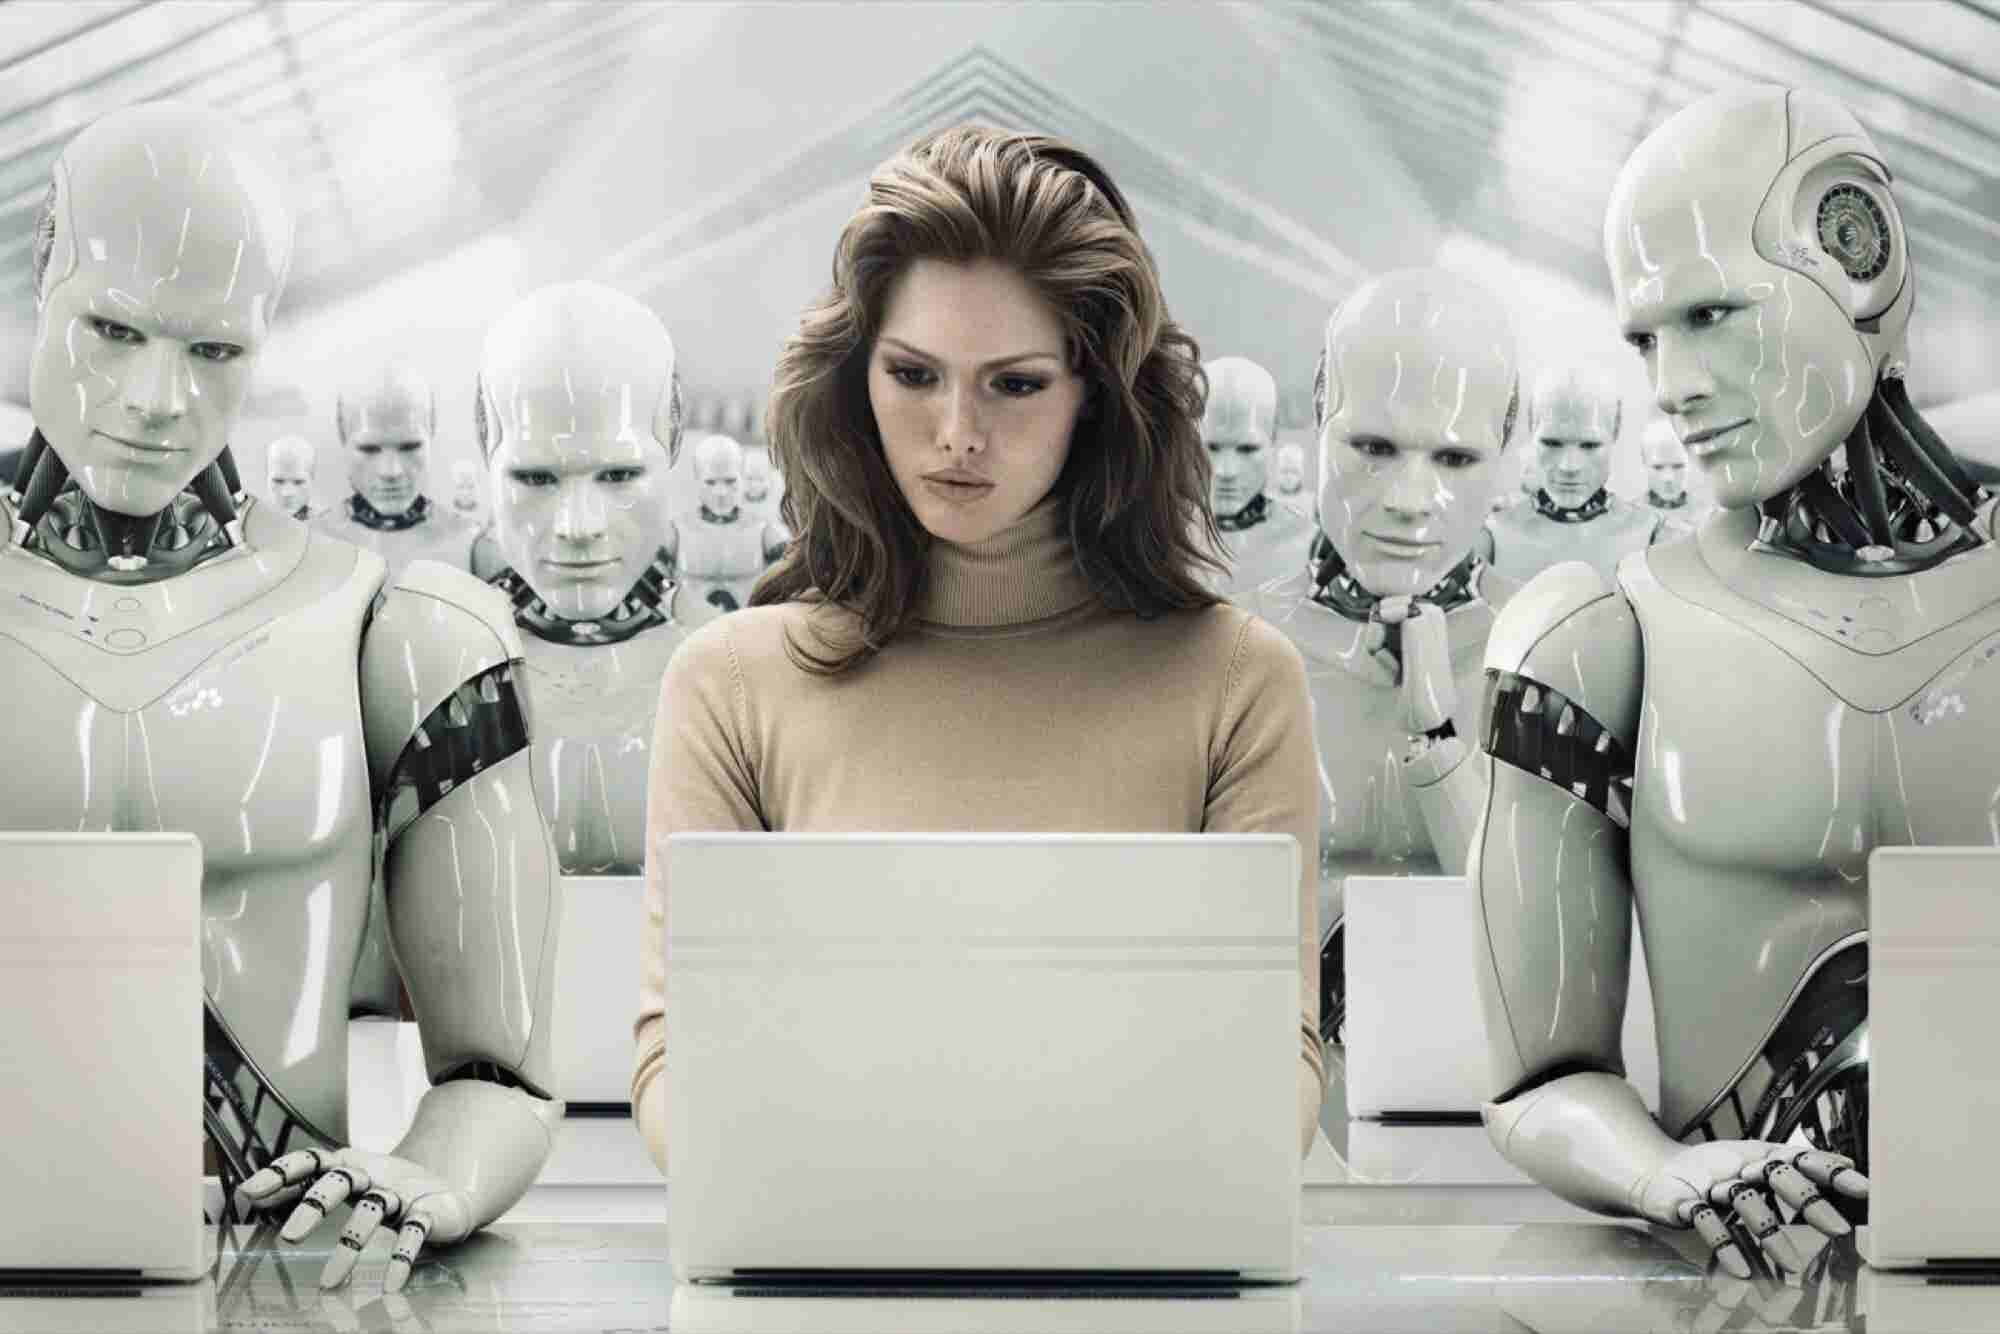 Artificial Intelligence Is Likely to Make a Career in Finance, Medicin...